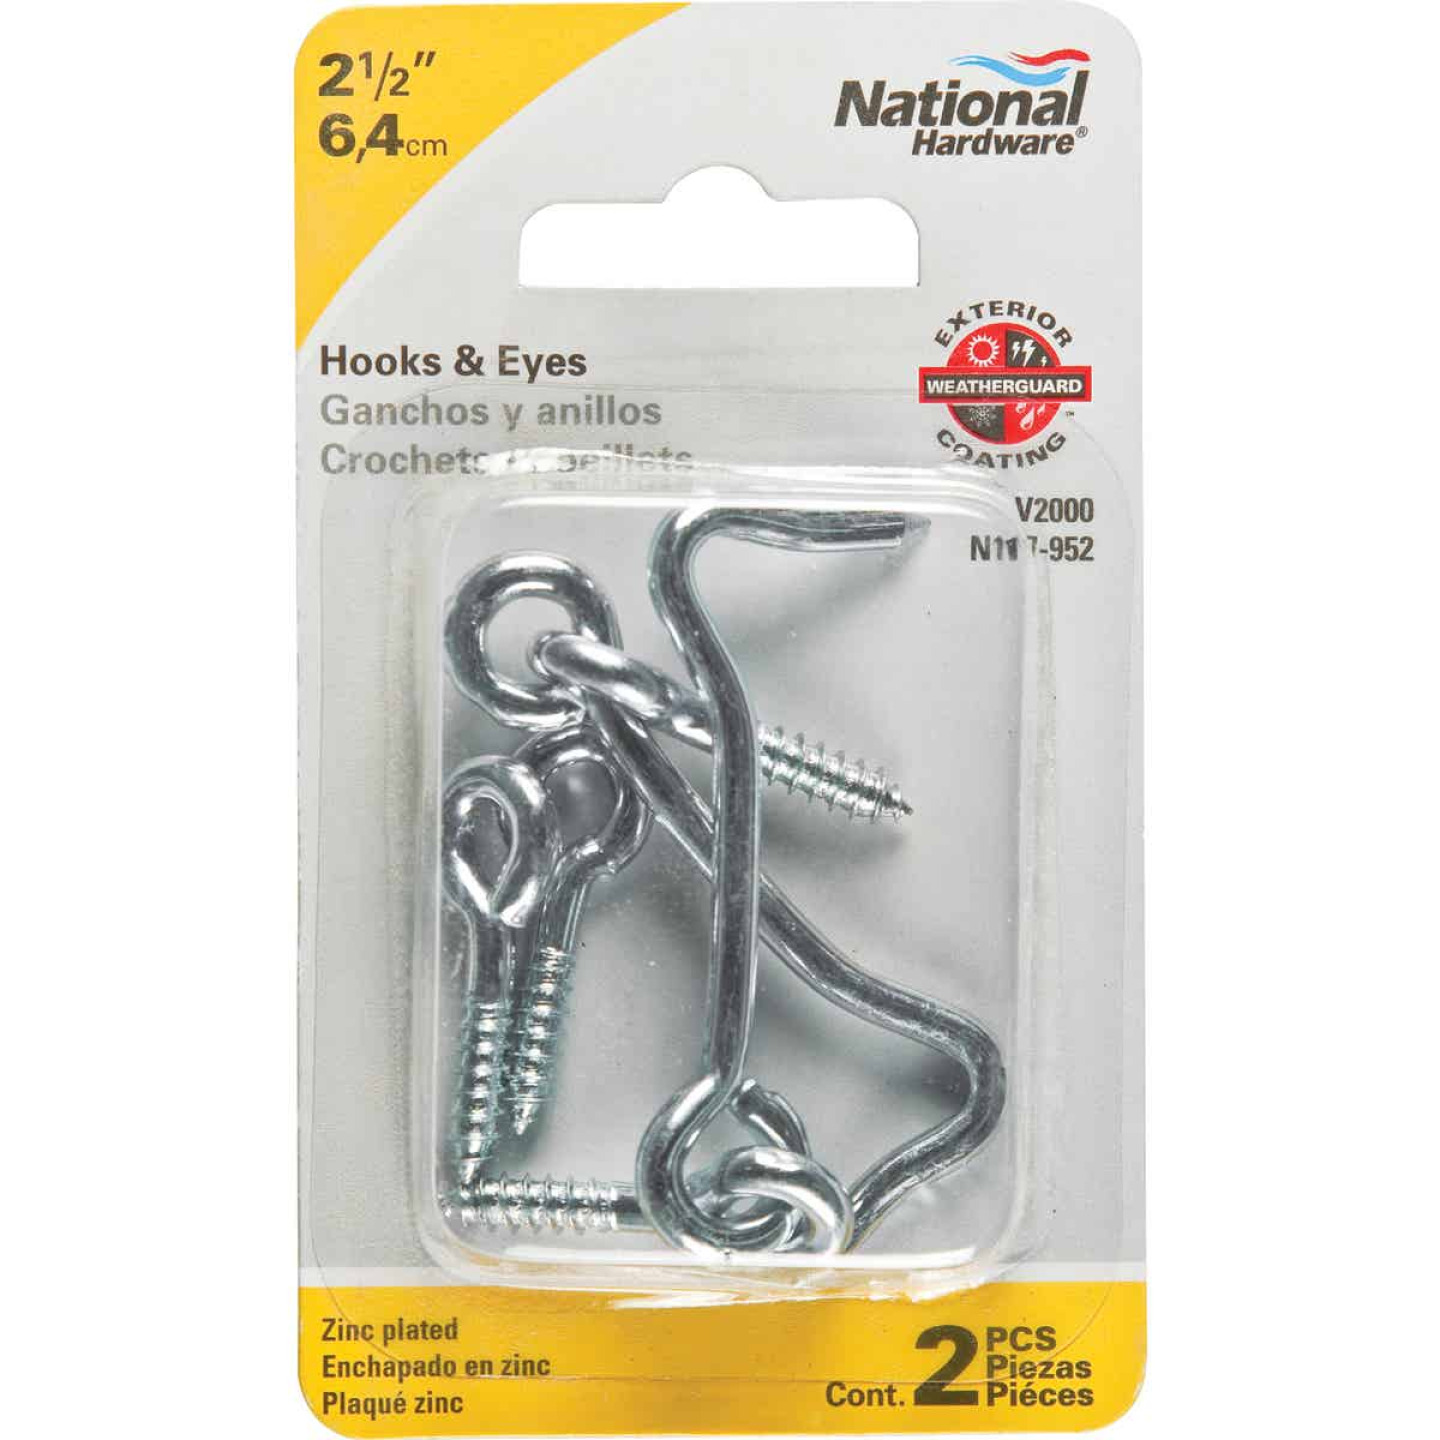 National 2-1/2 In. Steel Hook & Eye Bolt (2 Ct.) Image 2